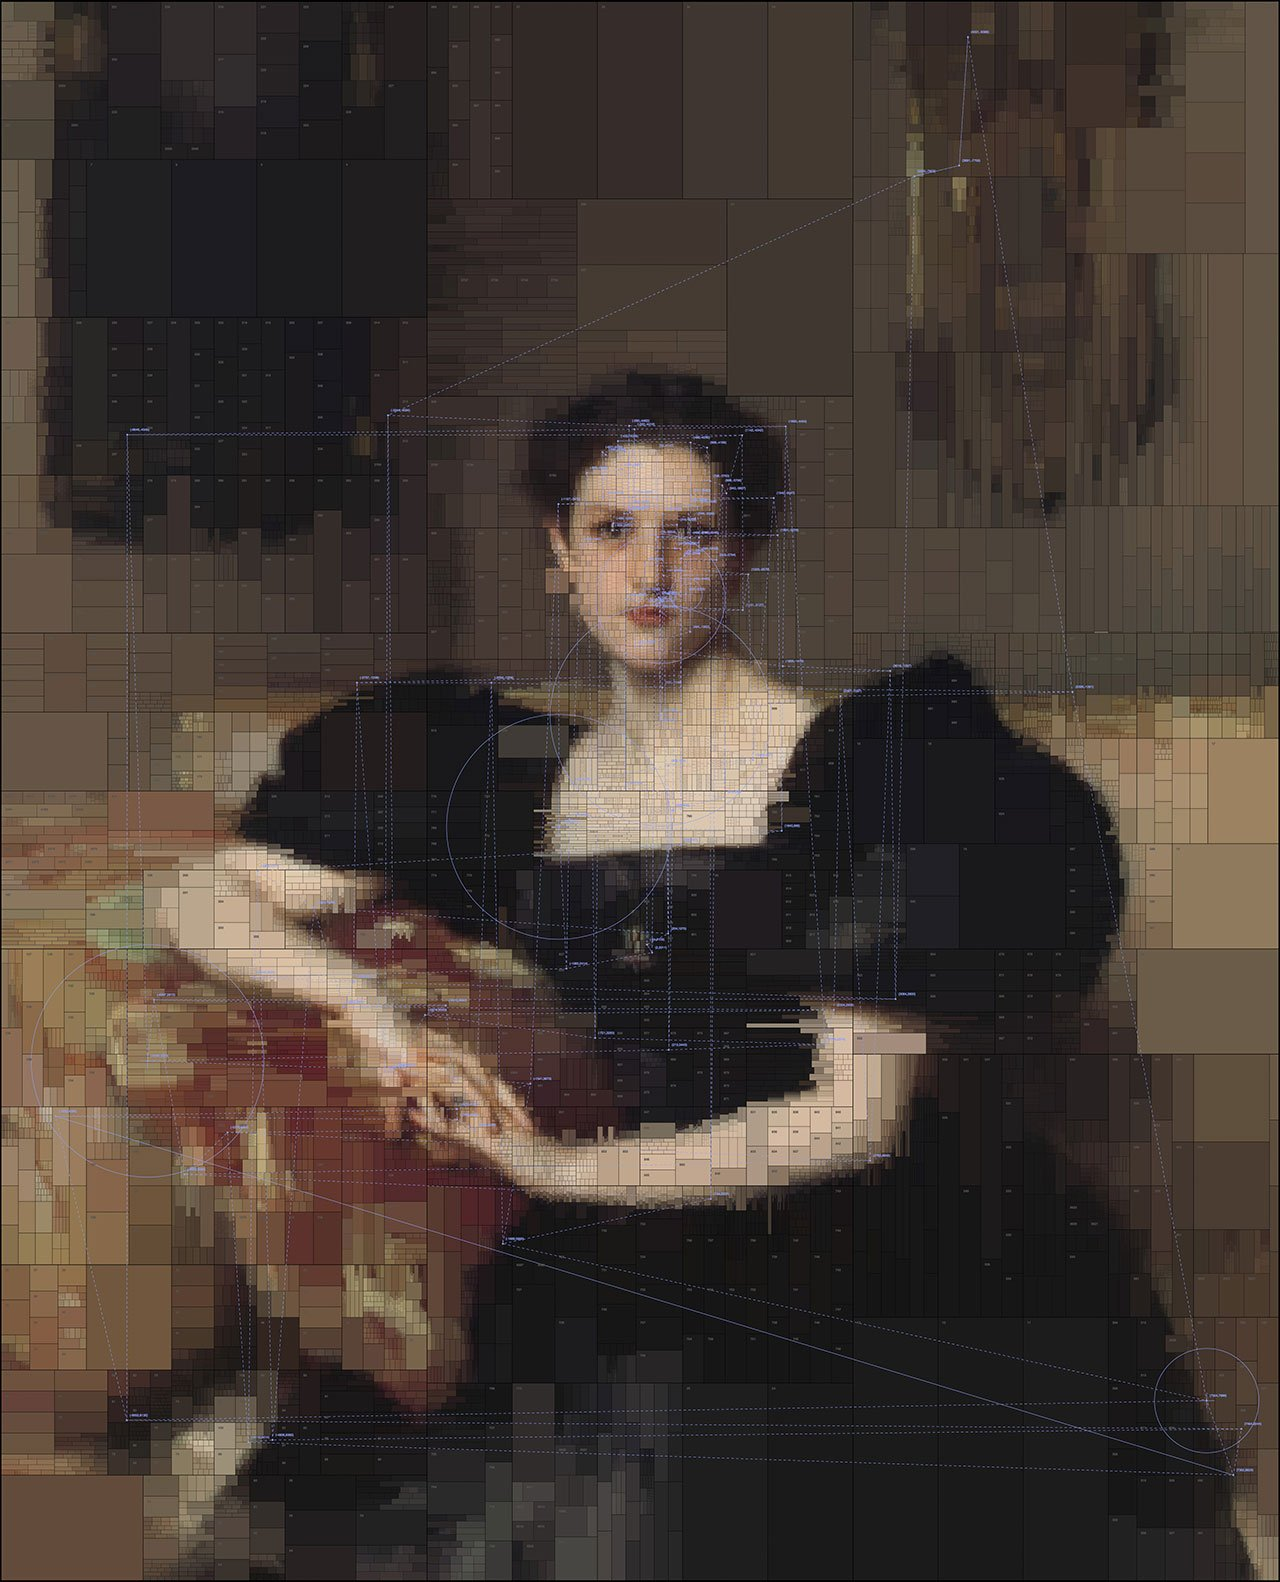 Elizabeth Winthrop Chanler, from Portraits series by Dimitris Ladopoulos (Original painting by John Singer Sargent, 1893).